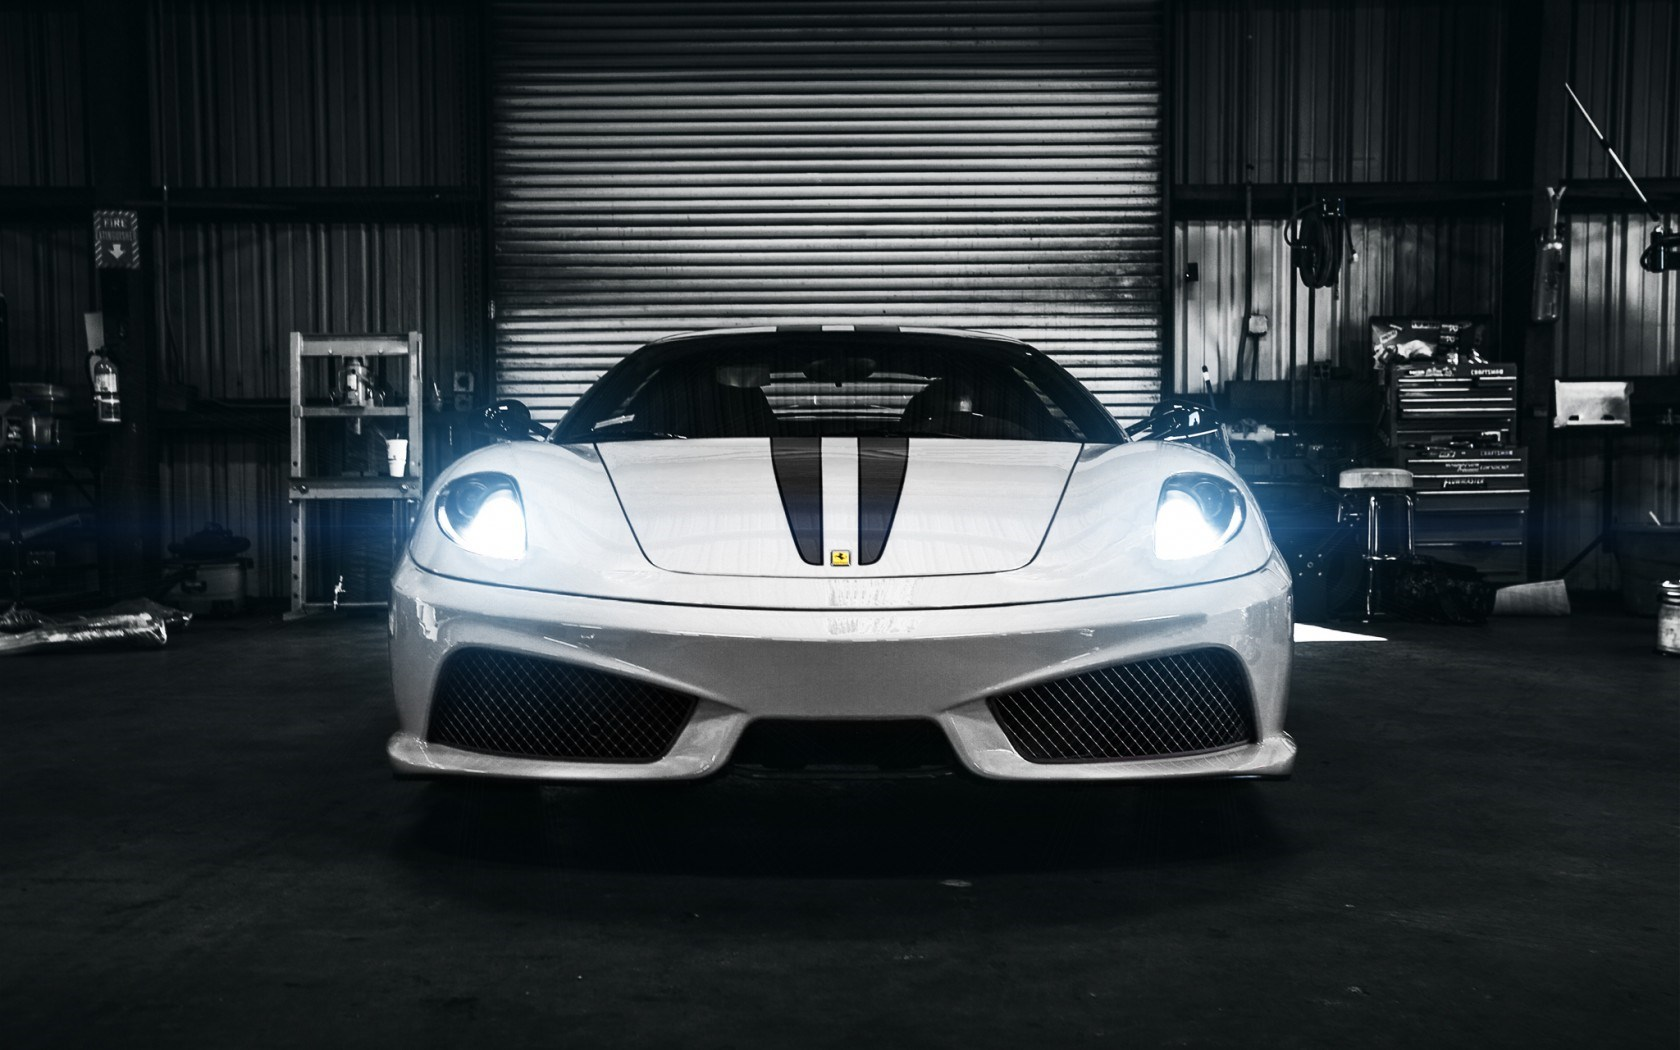 Ferrari F430 Scuderia Car Front Lights